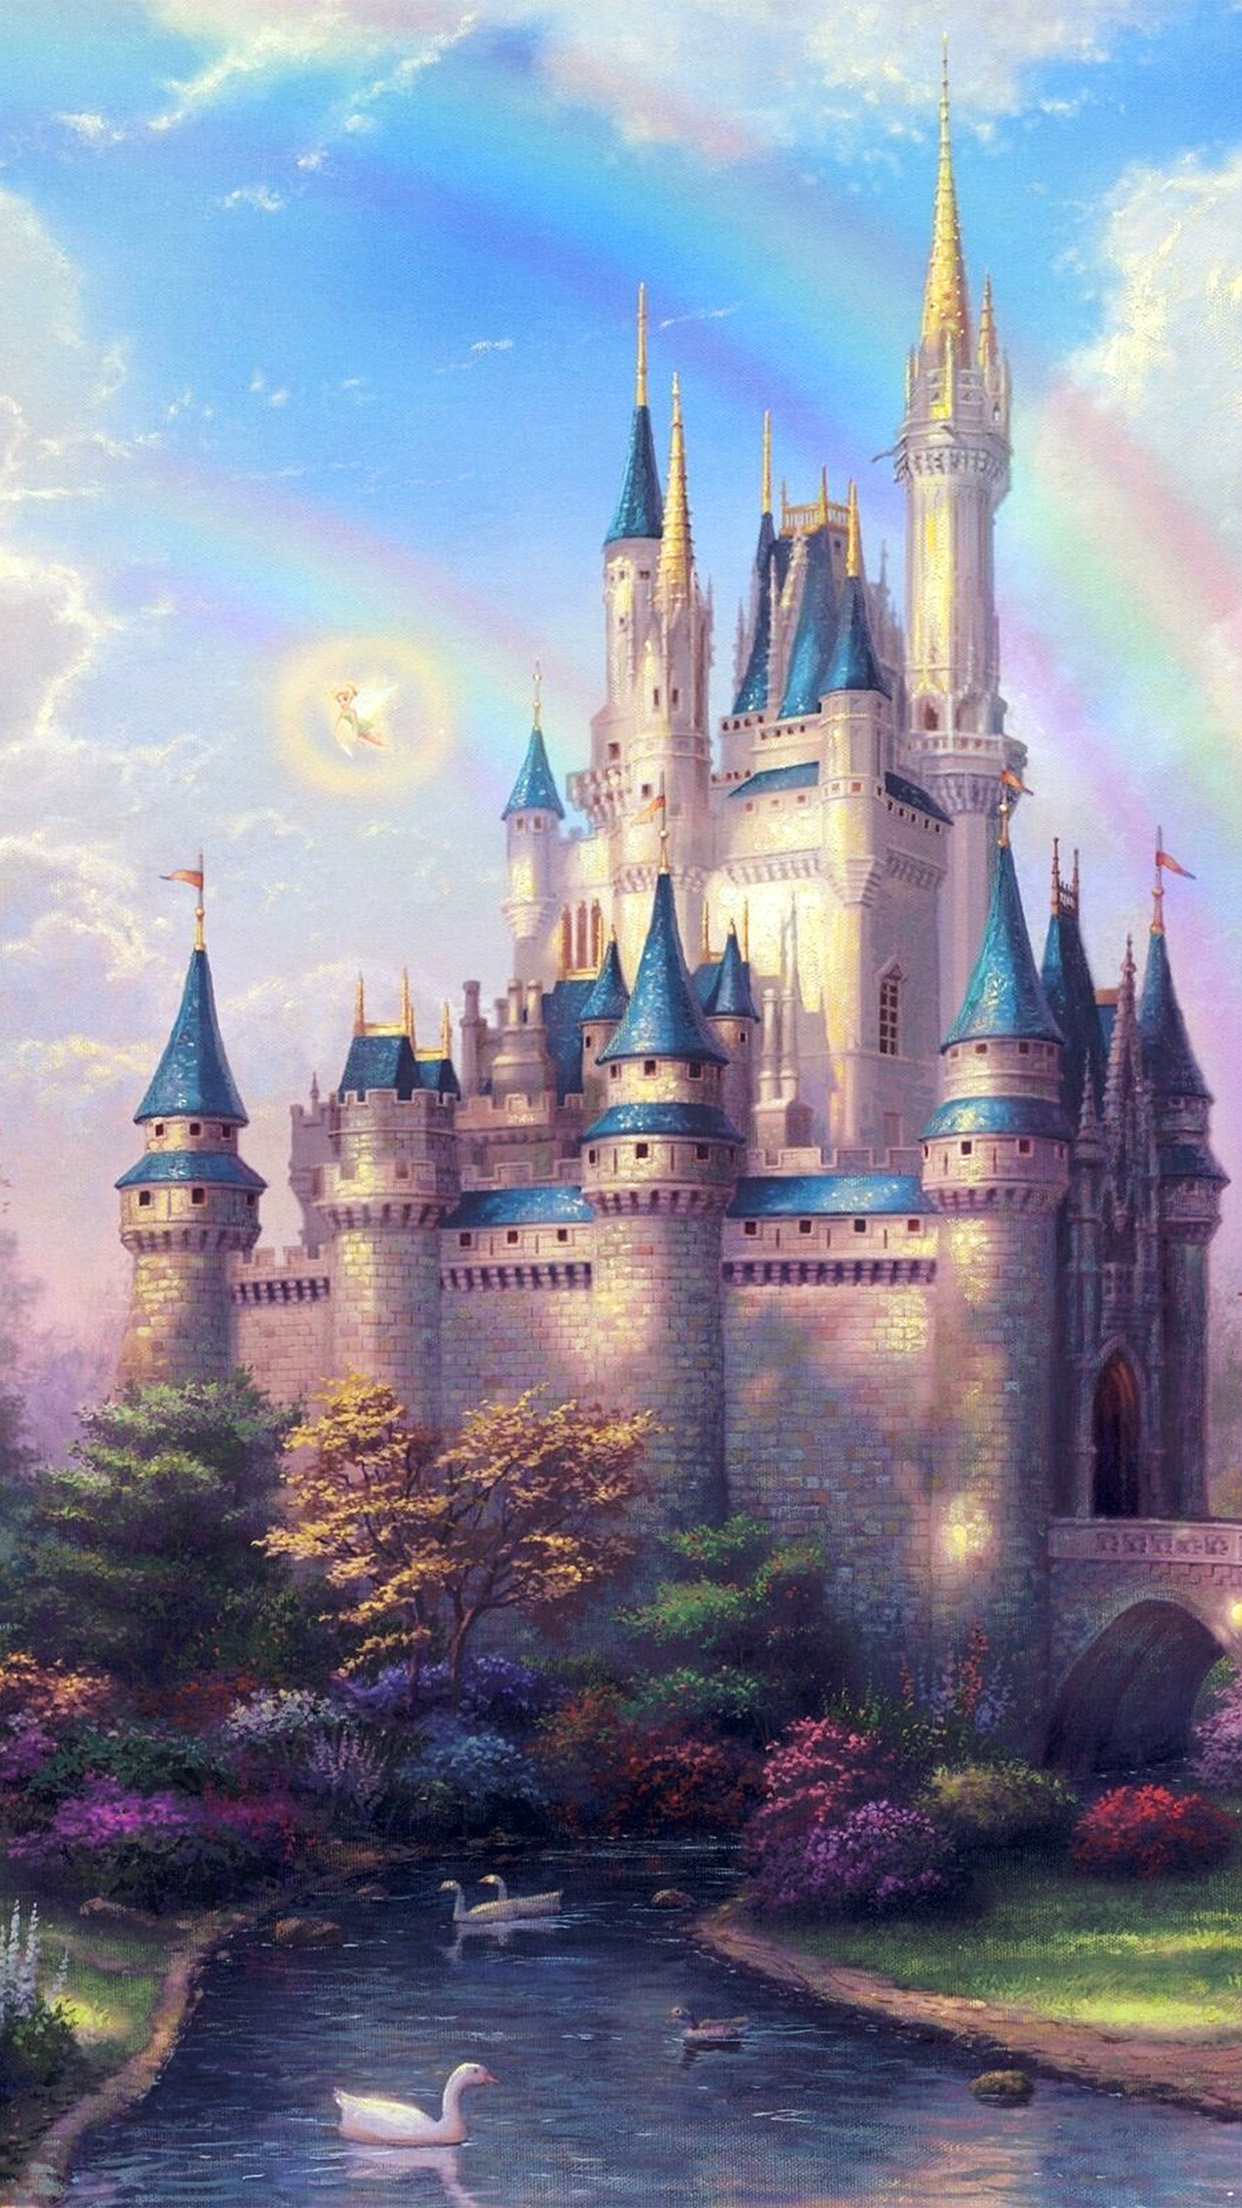 The Best Wallpaper For Iphone 7 Plus Papers Co Iphone Wallpaper Ap98 Fantasy Castle